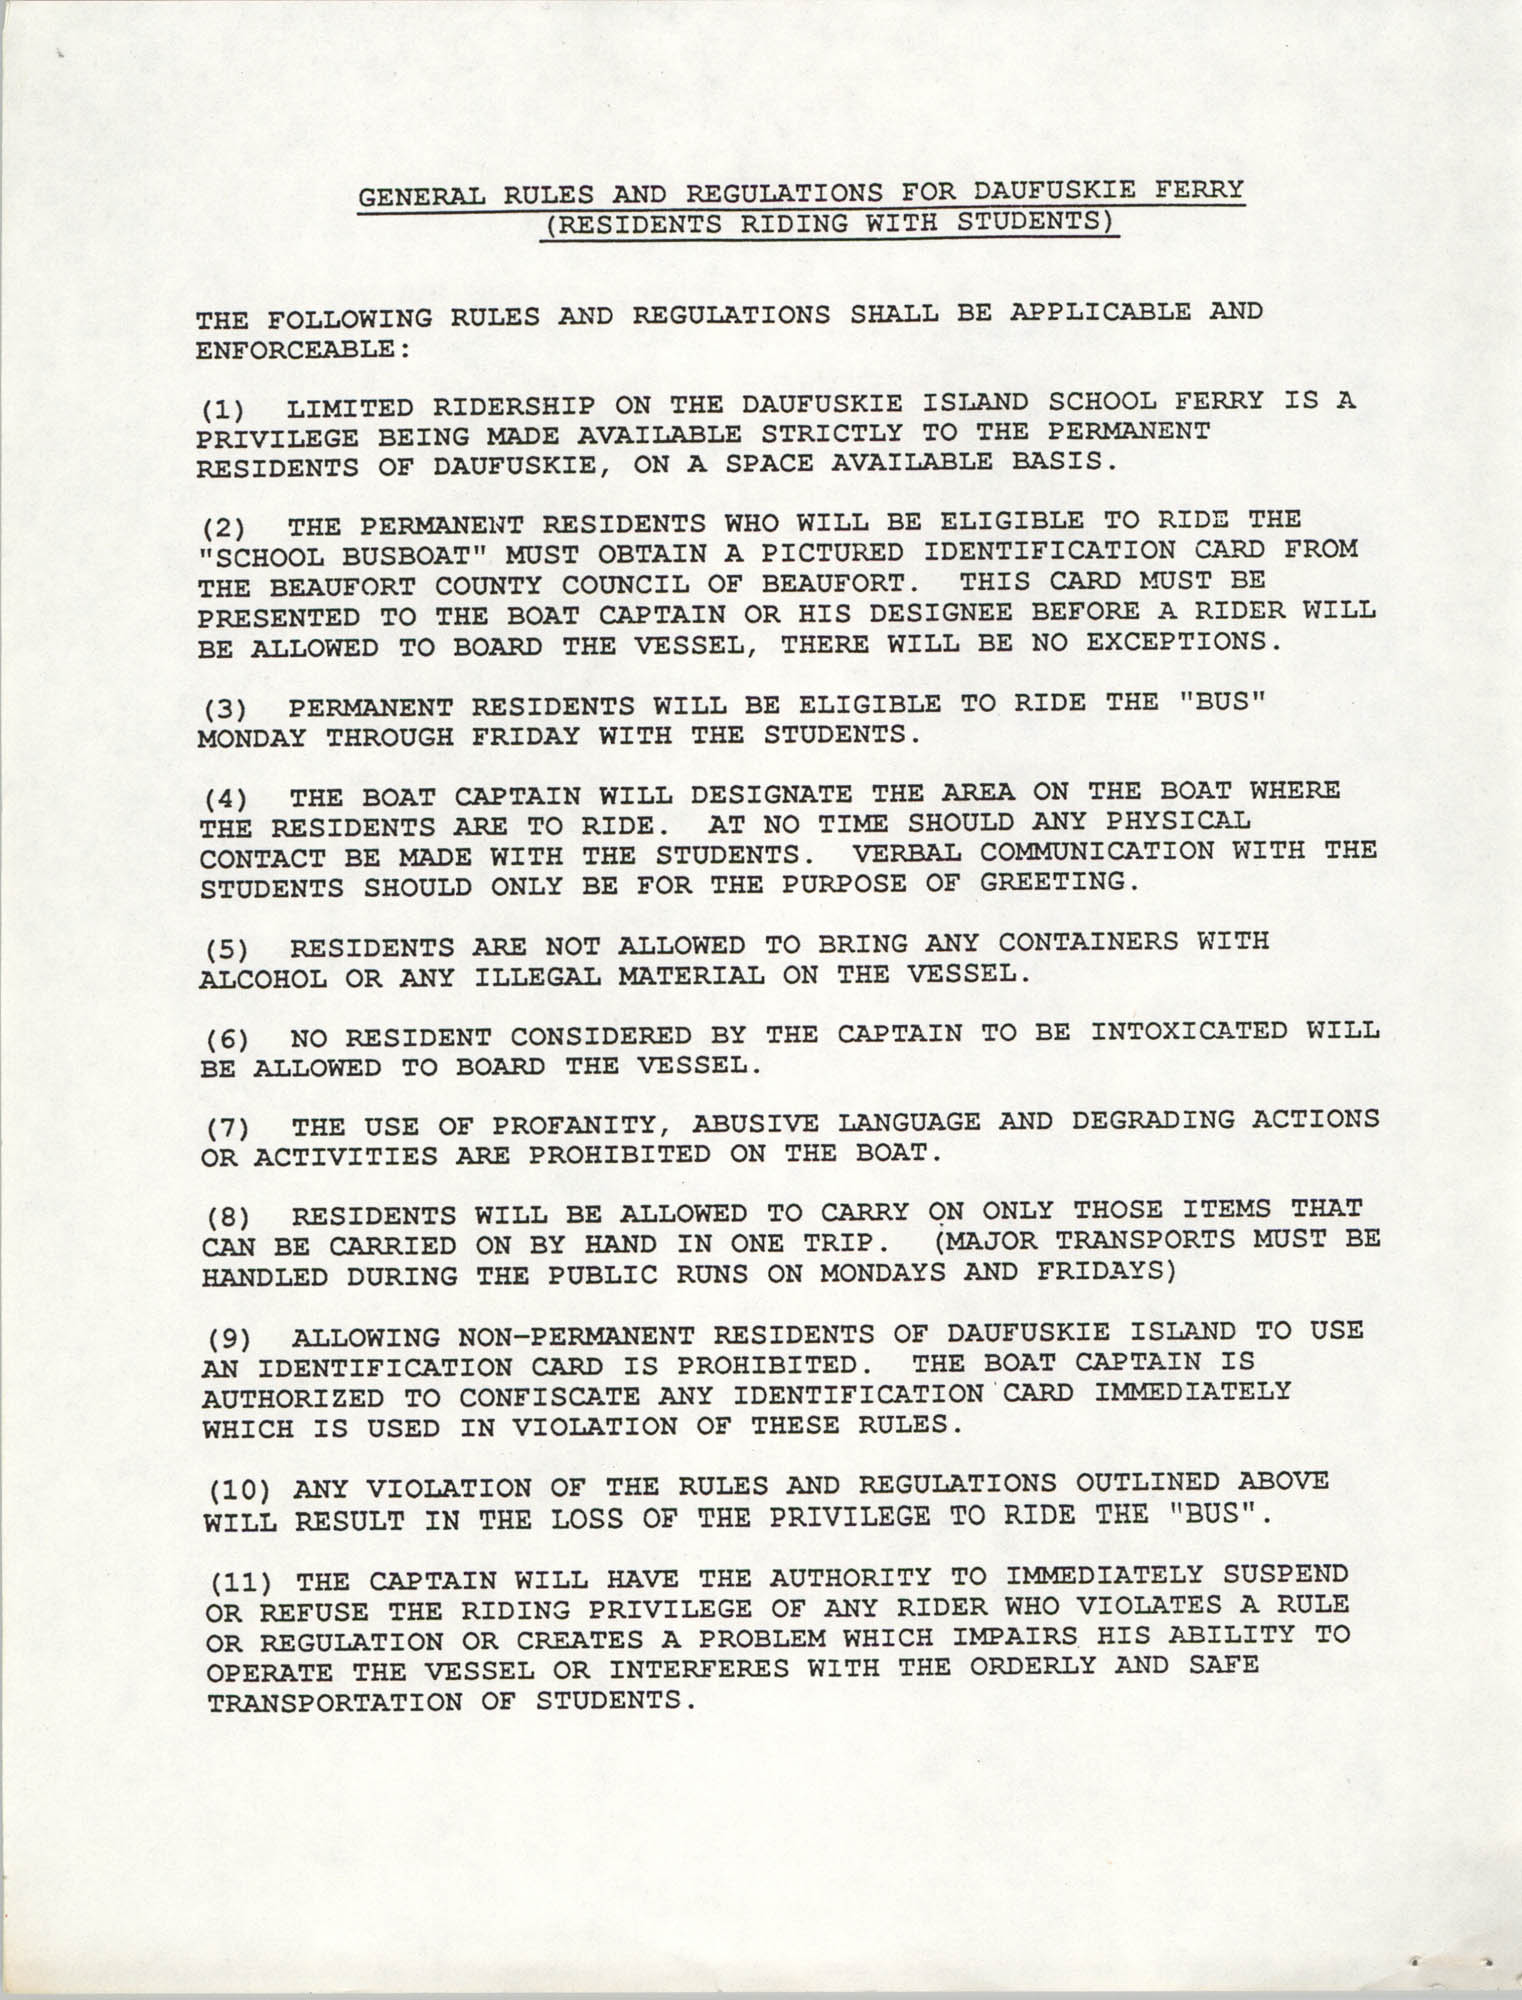 General Rules and Regulations for Daufuskie Ferry, Page 1